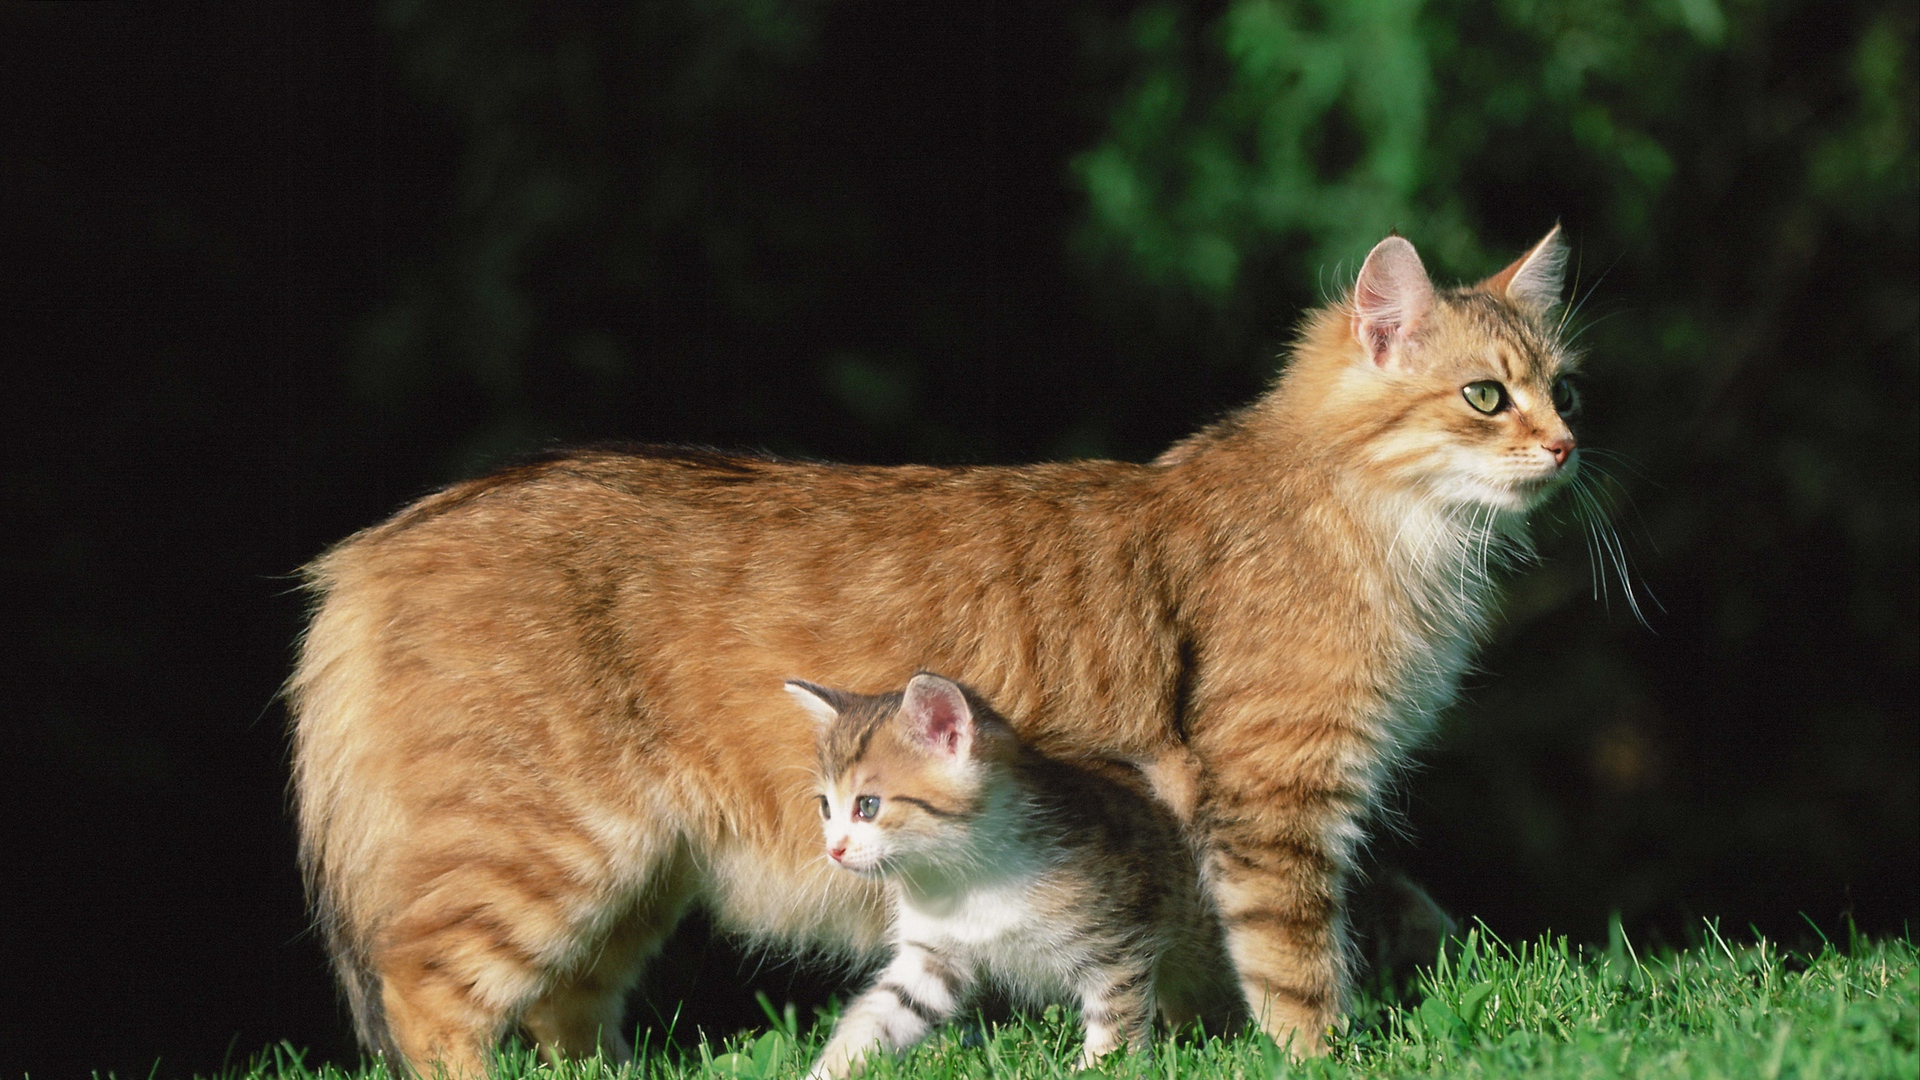 Cute Cat images for Mobile 1